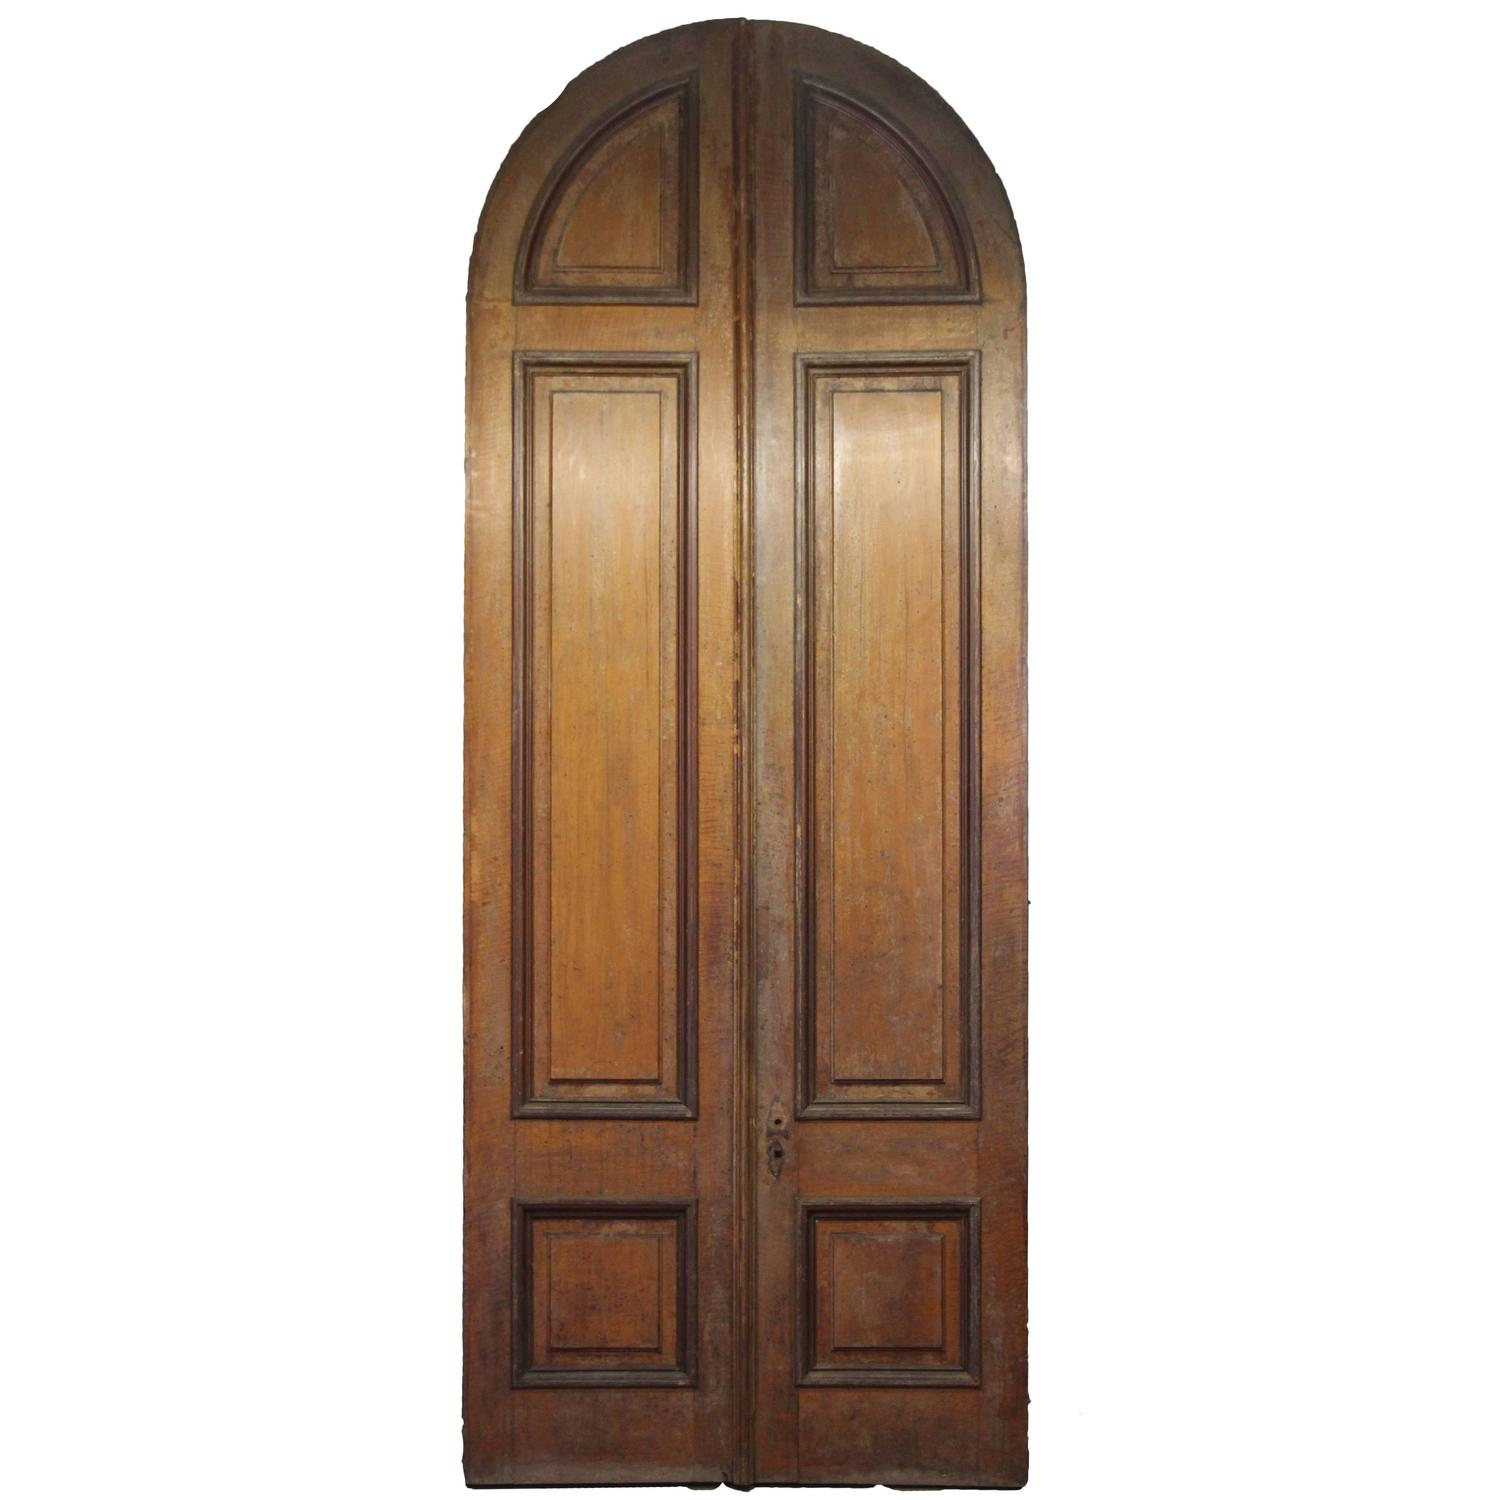 1876 Pair of Oversize Raised Panel Arched Entry Double Doors from New Jersey